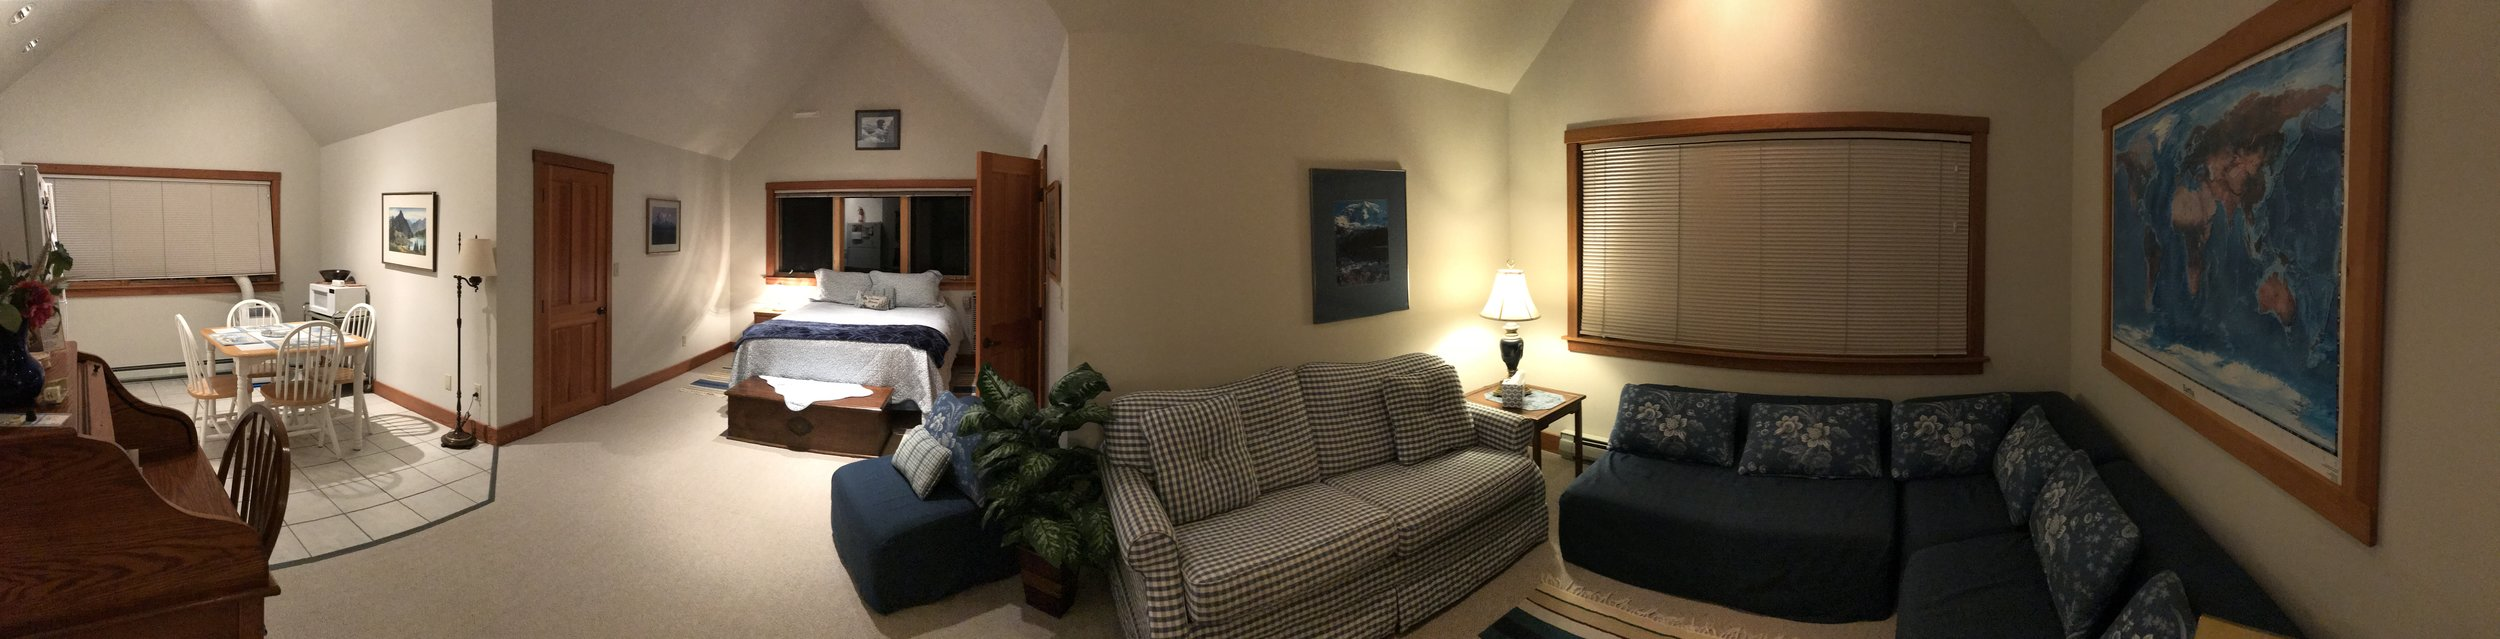 Full overview of apartment